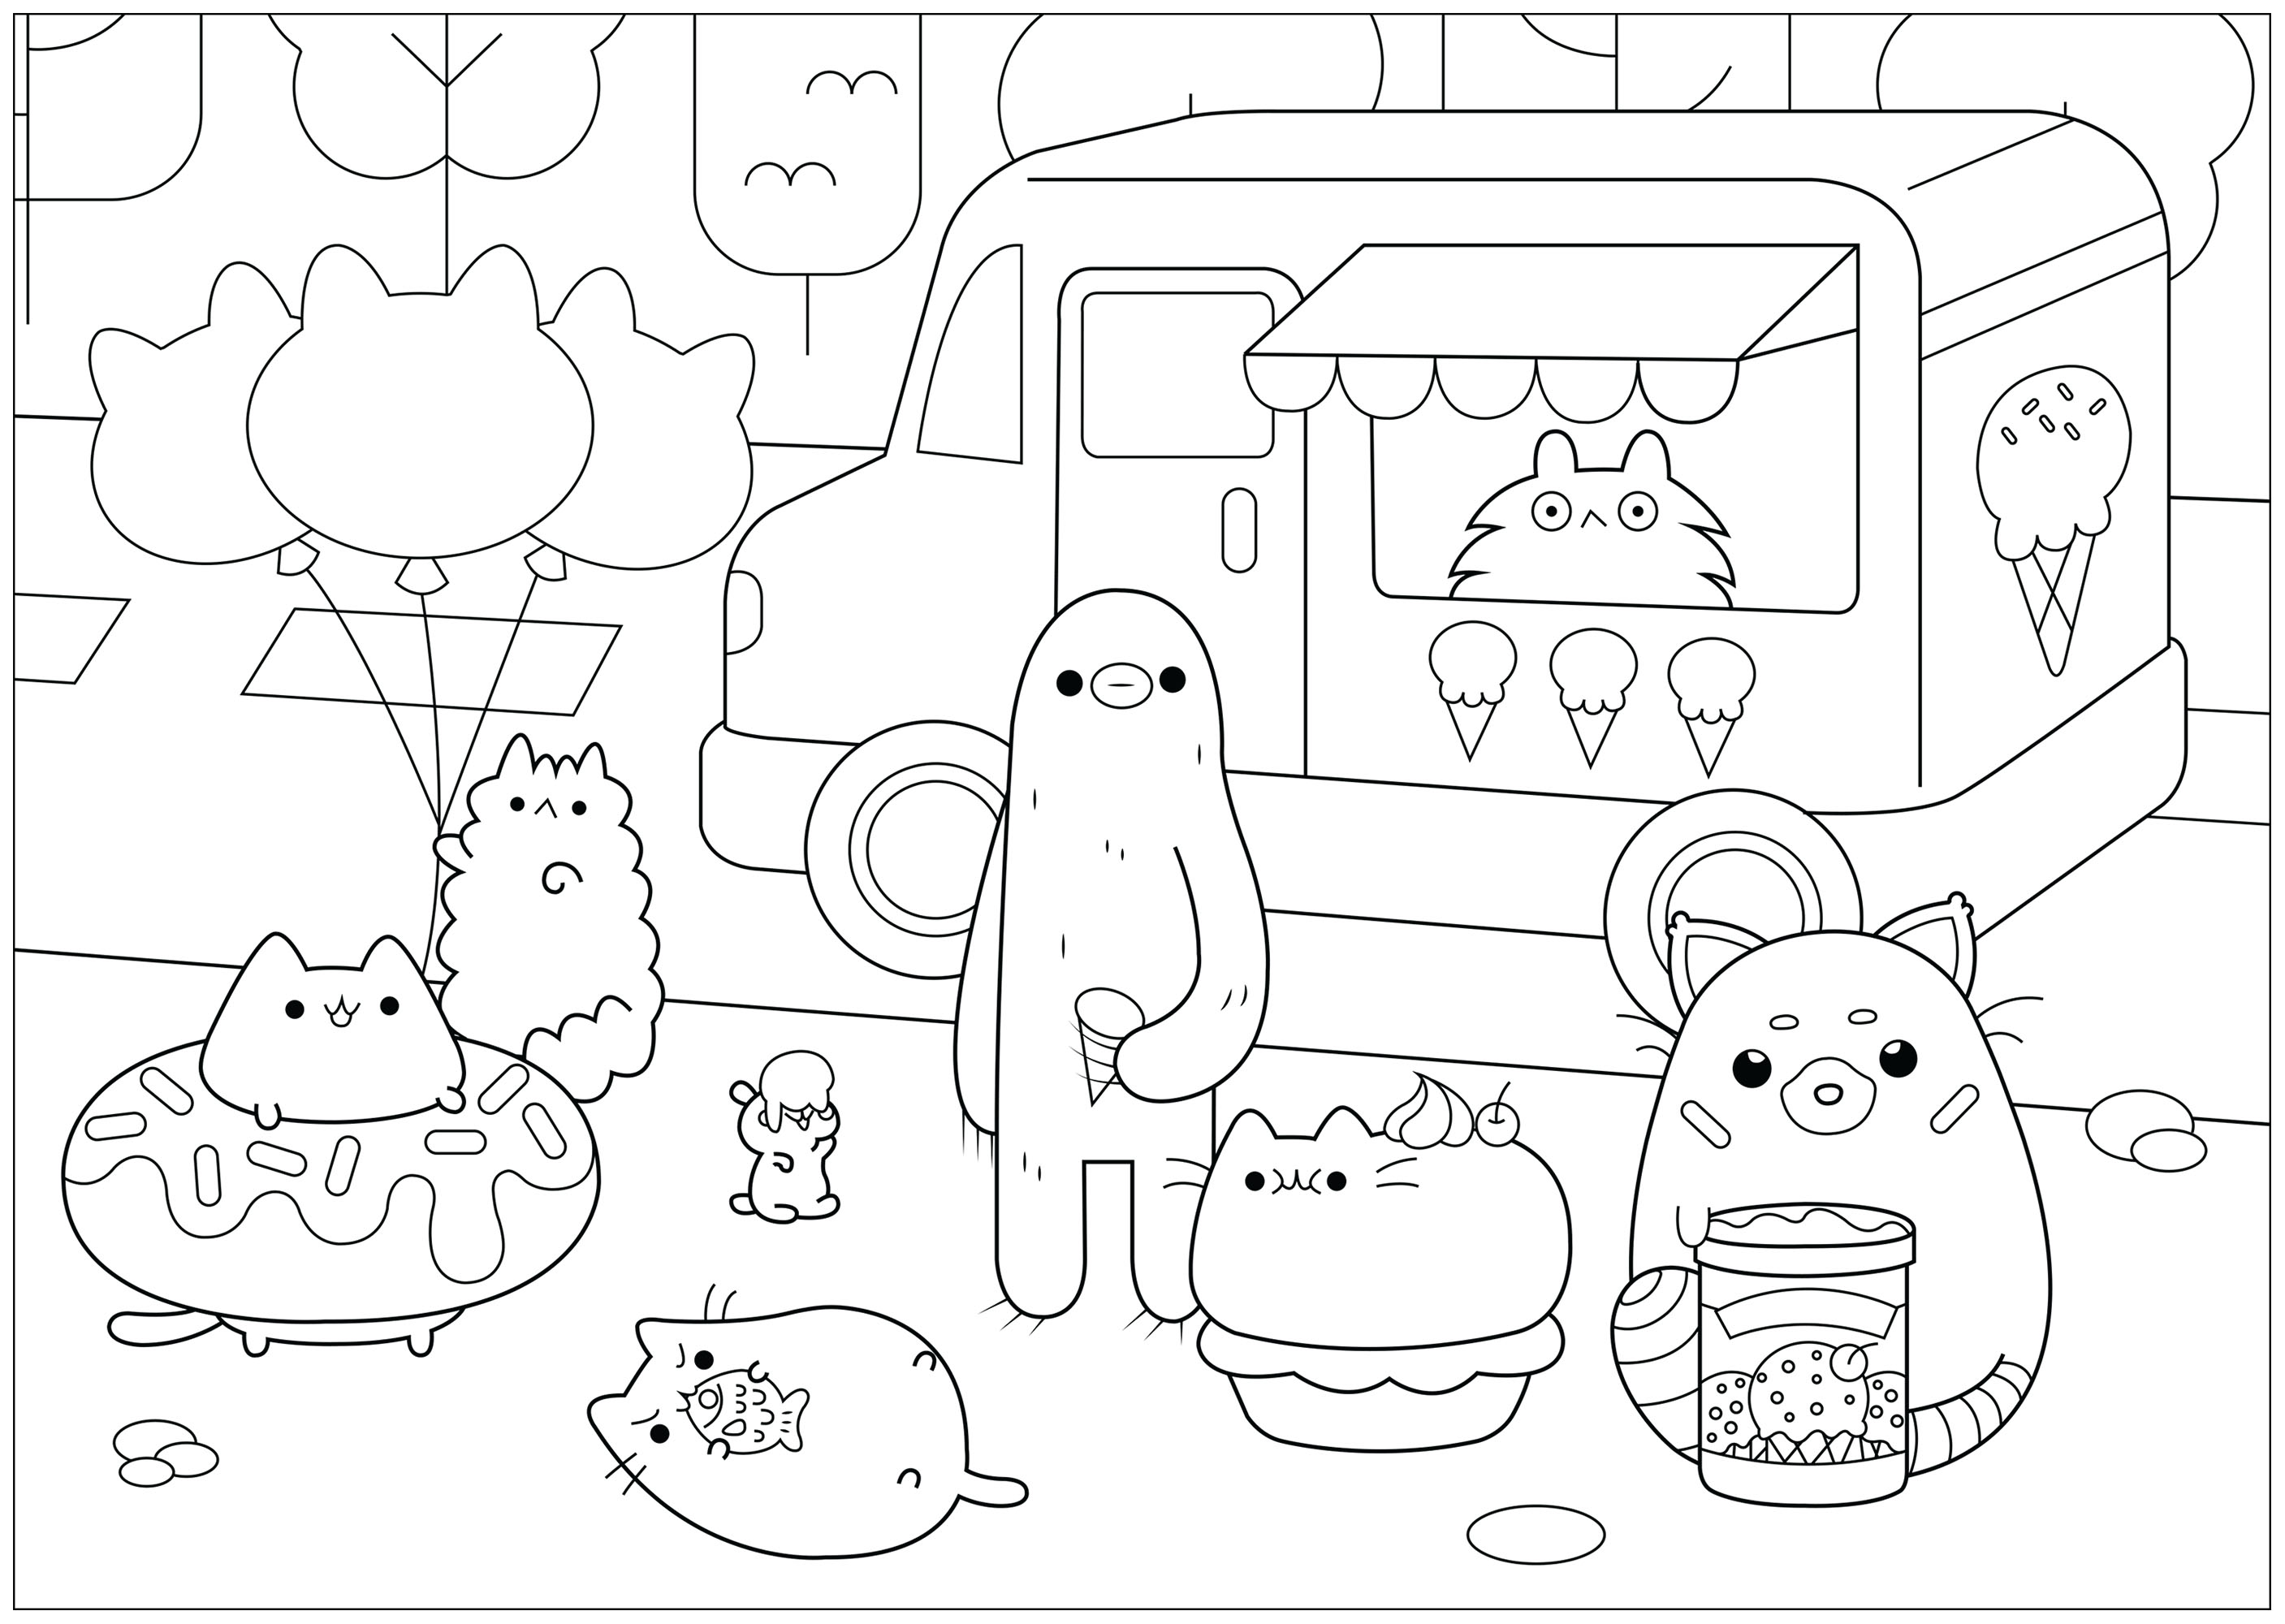 Doodle Art Free To Color For Children